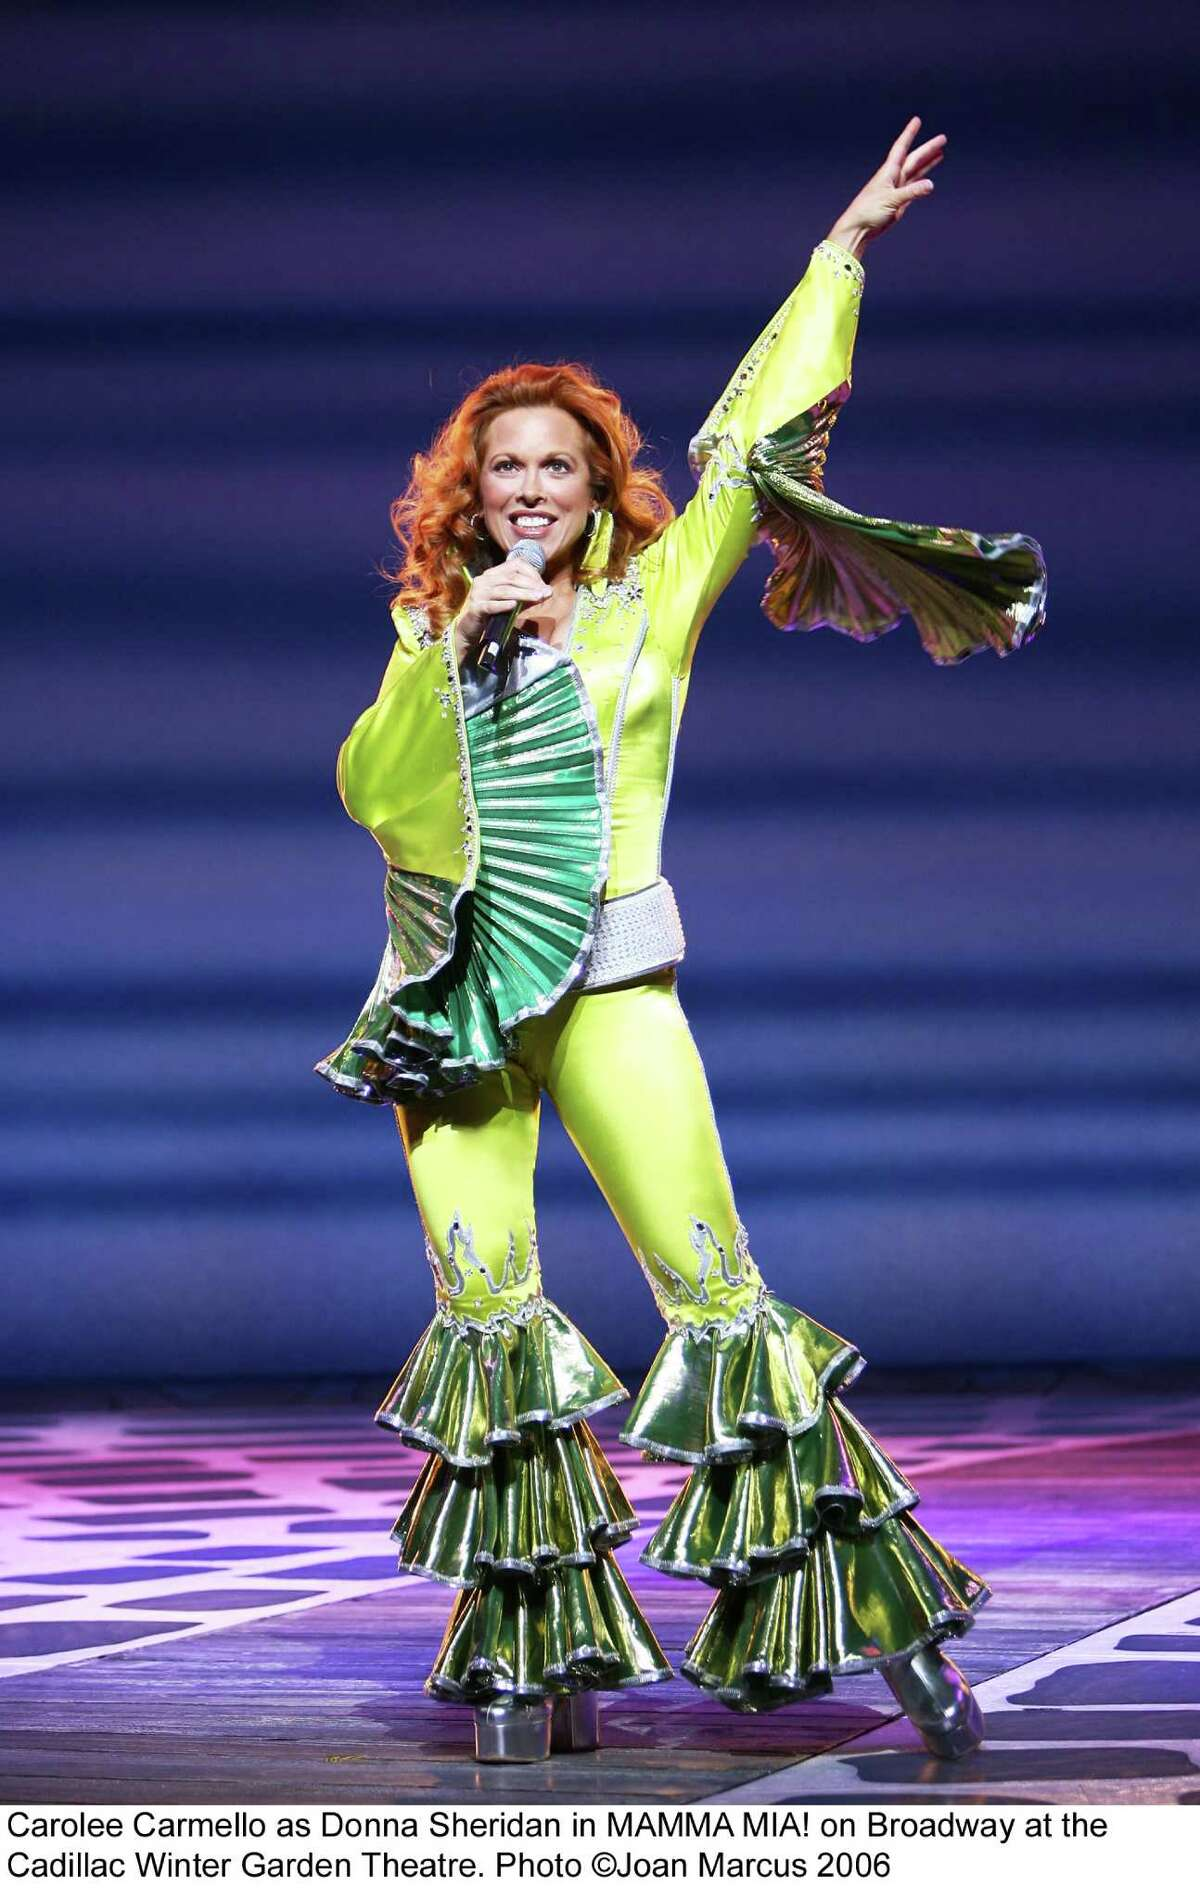 University at Albany alum Carolee Carmello, performing as Donna Sheridan in Mamma Mia! on Broadway, returns to the Capital Region on Sept. 24 for a performance at the UAlbany Performing Arts Center. (Photo courtesy of UAlbany)